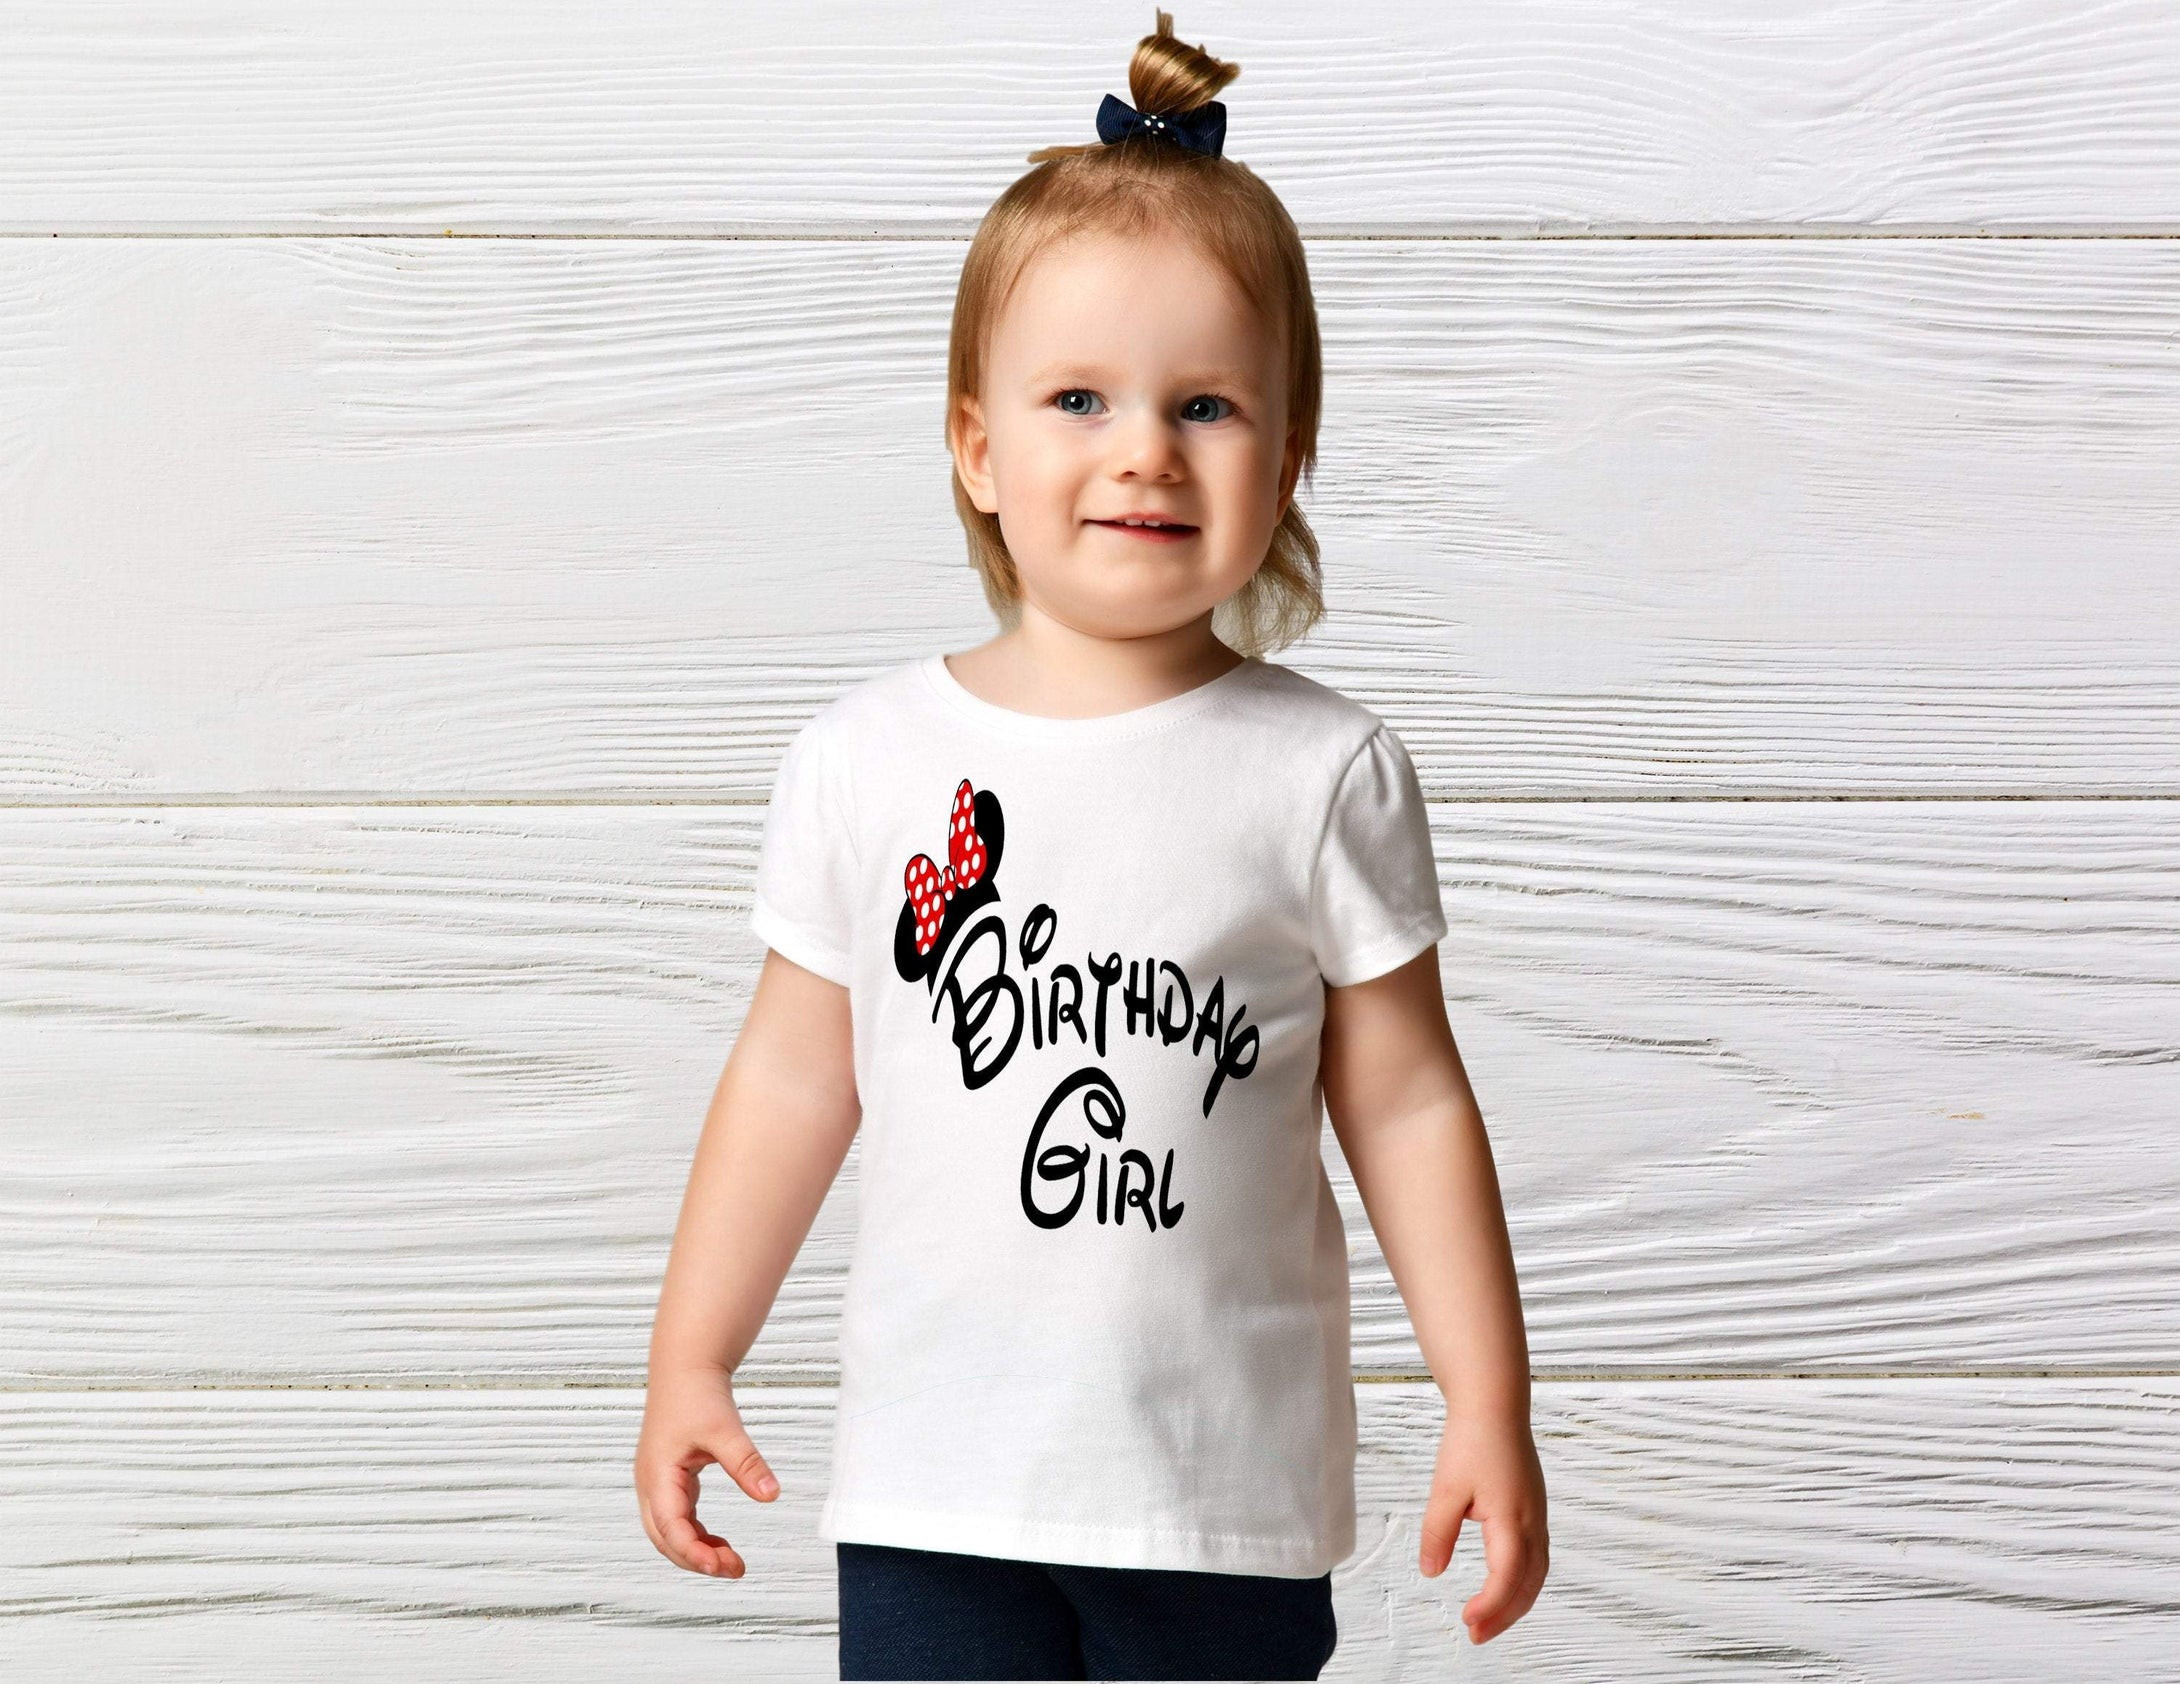 Minnie birthday shirt Minnie Bow birthday shirt  Birthday Girl shirt